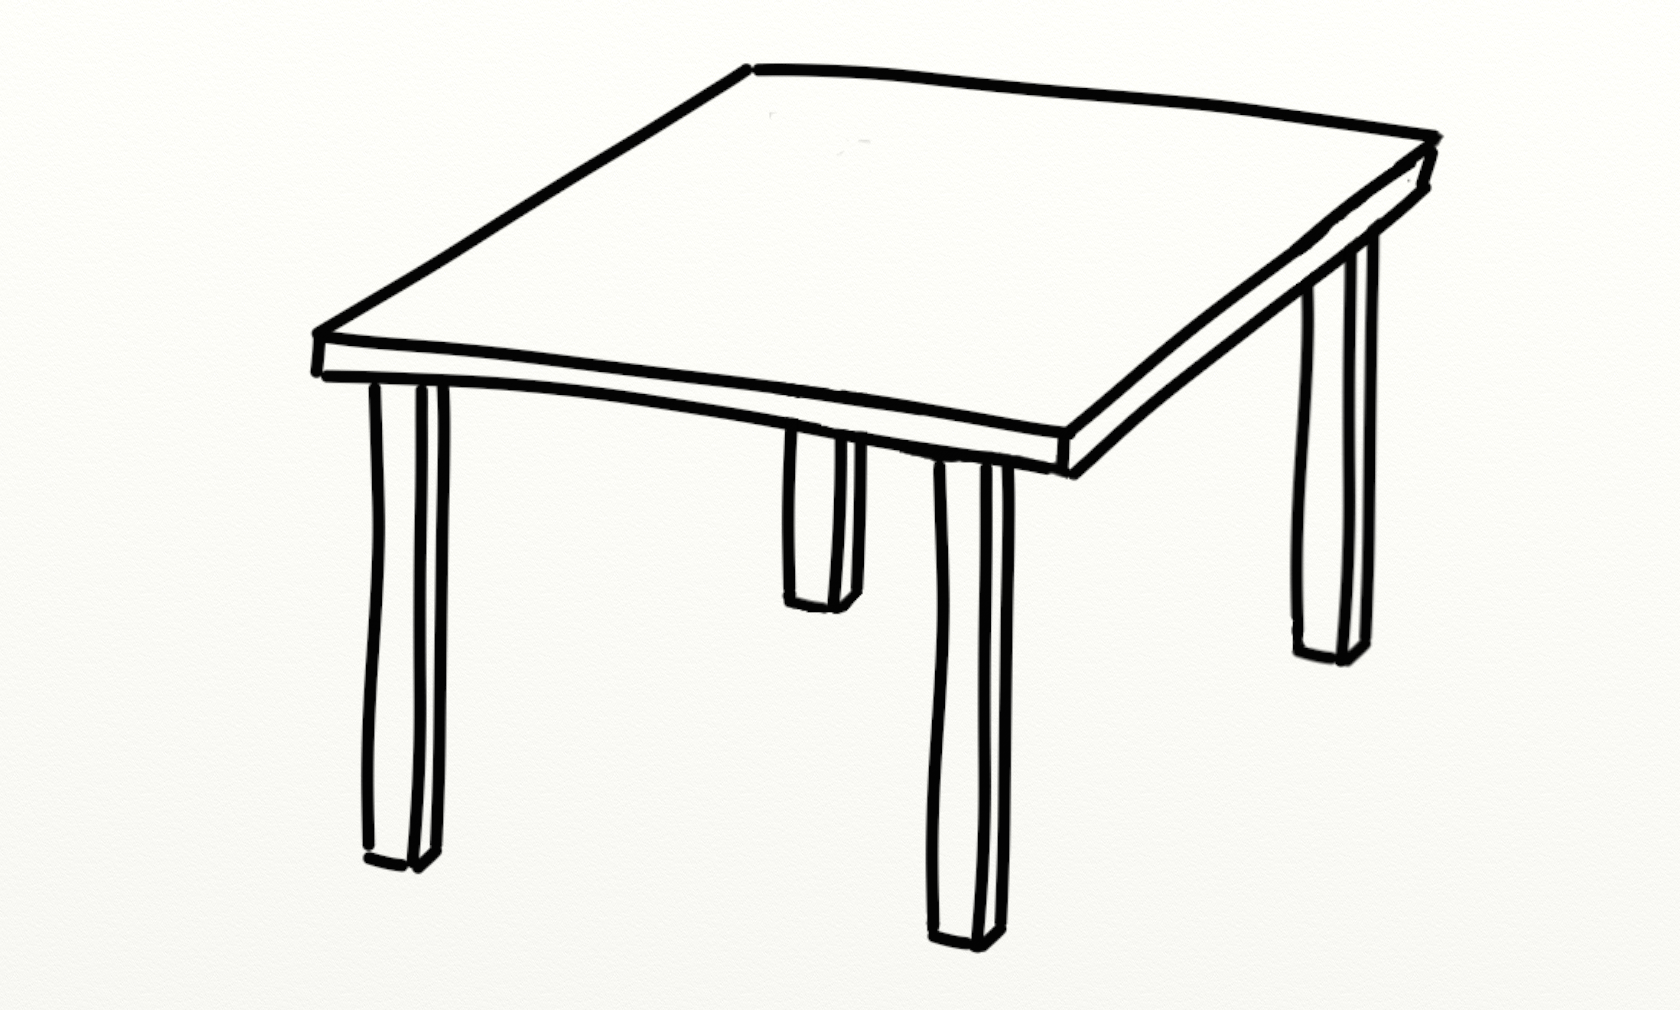 Clip art coffee table clipart clipart suggest Black and white coffee table